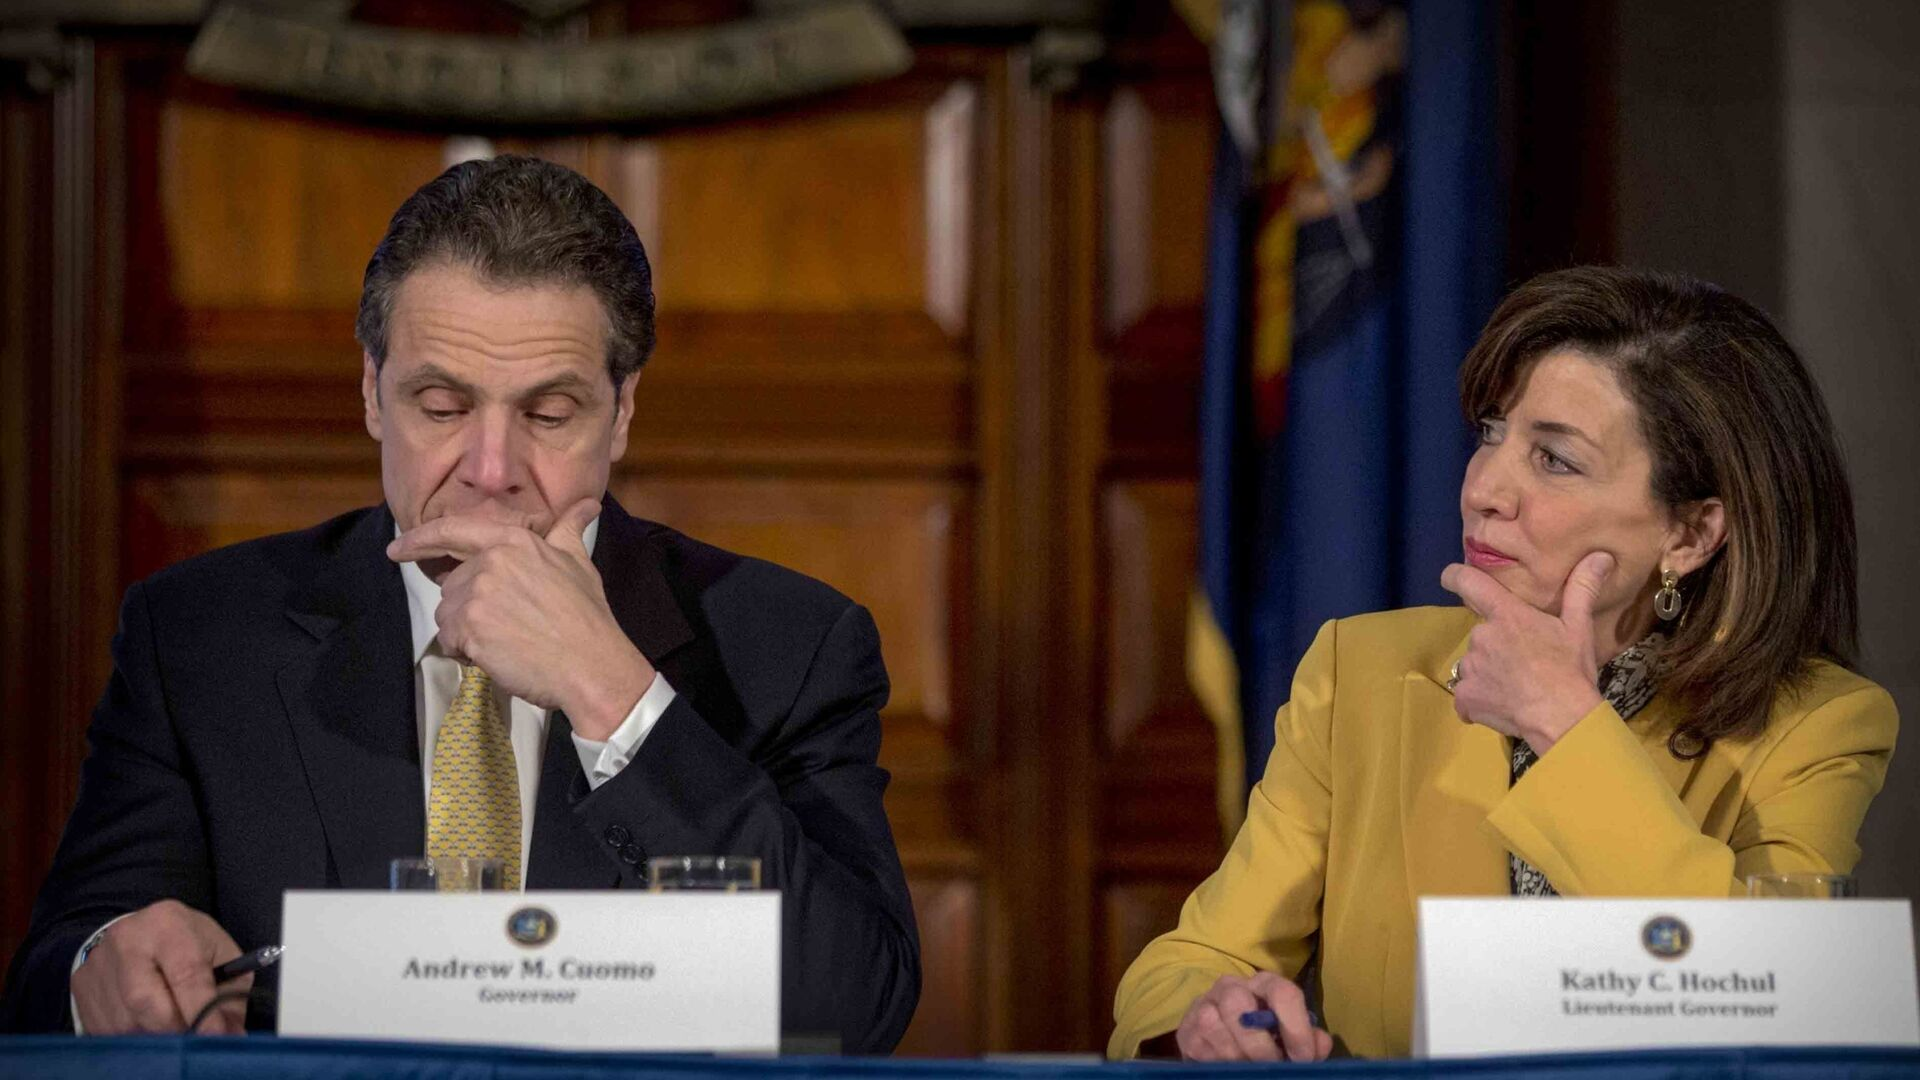 FILE - This photo from Wednesday, Feb. 25, 2015, shows New York Gov. Andrew Cuomo, left, and Lt. Gov. Kathy Hochul during a cabinet meeting at the Capitol in Albany, N.Y. Cuomo faces possible impeachment following findings from an independent investigation overseen by state Attorney General Letitia James - Sputnik International, 1920, 11.08.2021